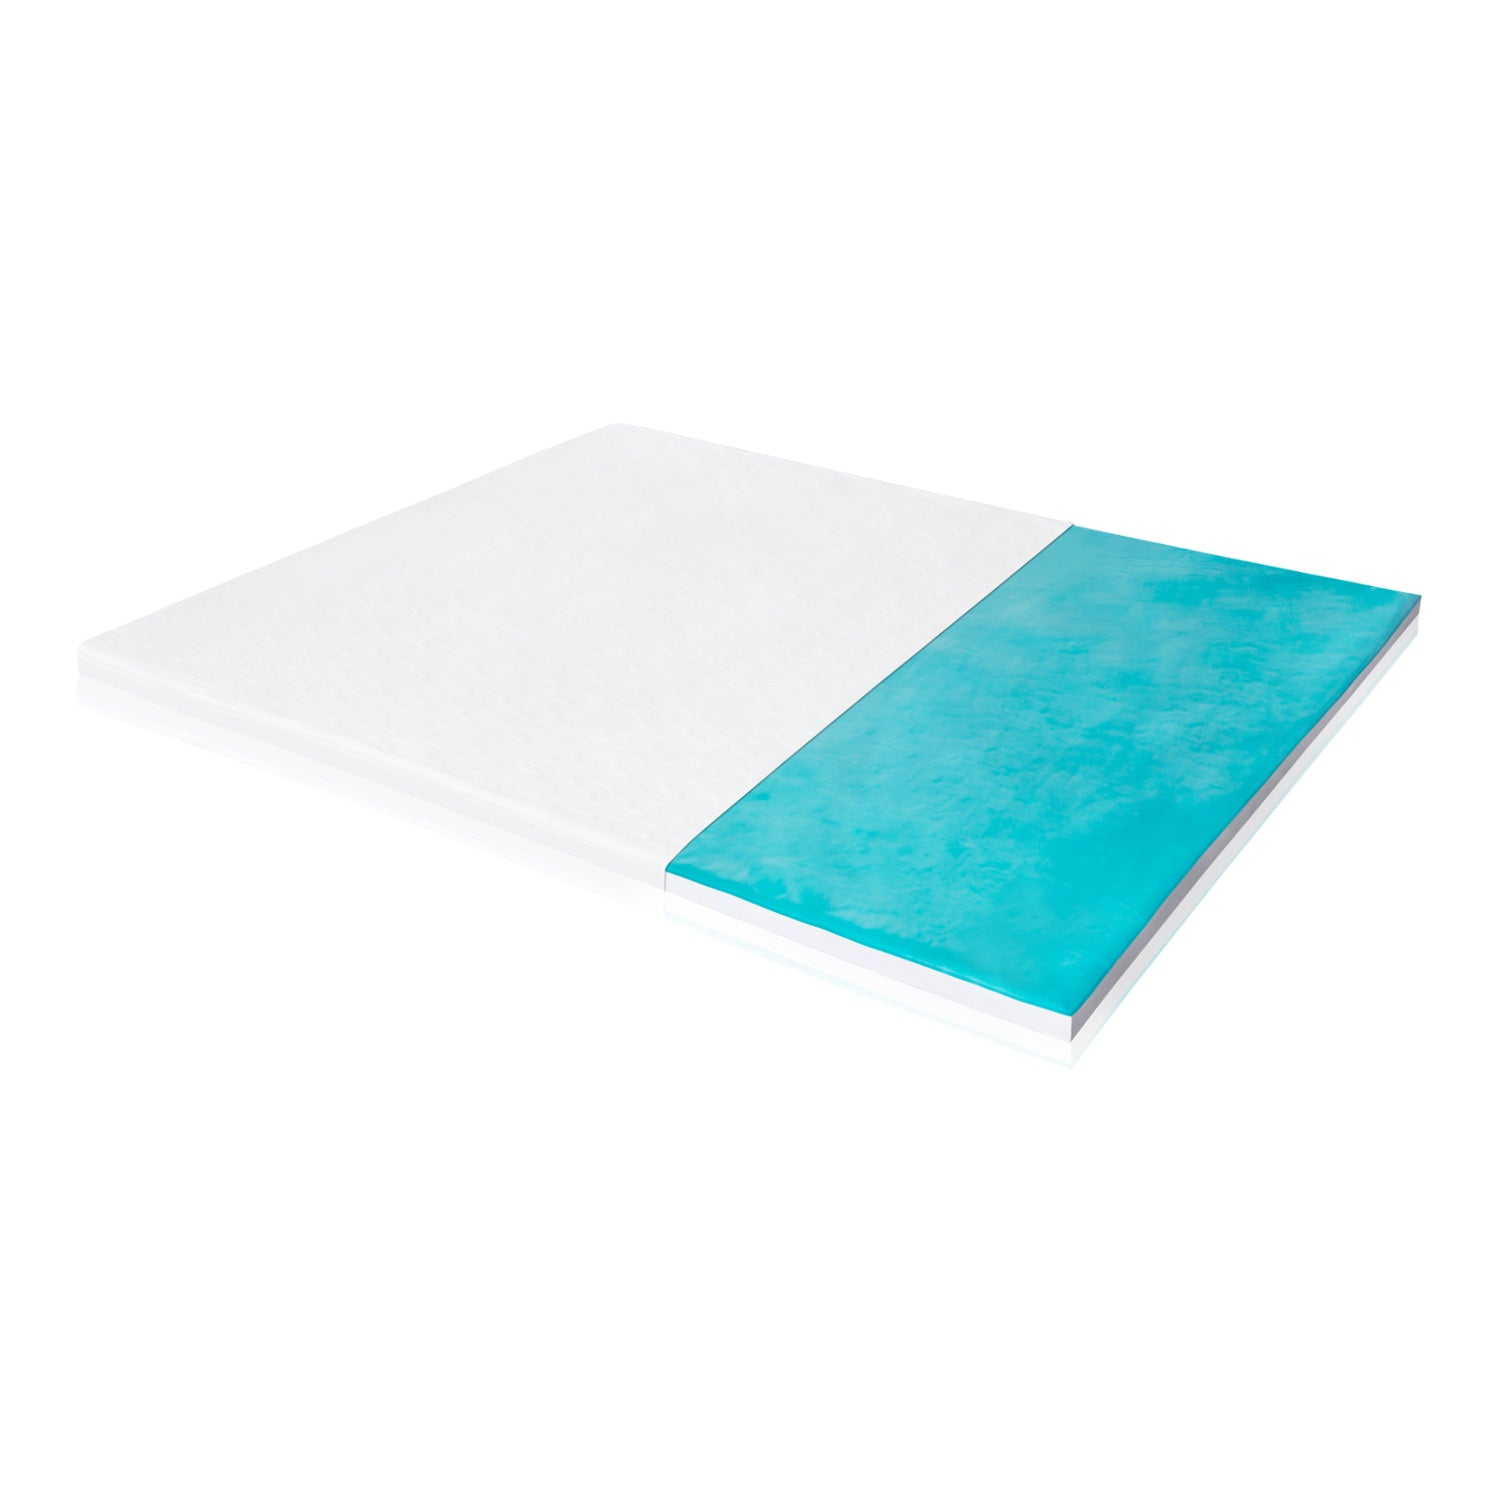 Malouf Isolus 2.5 Inch Liquid Gel Mattress Topper